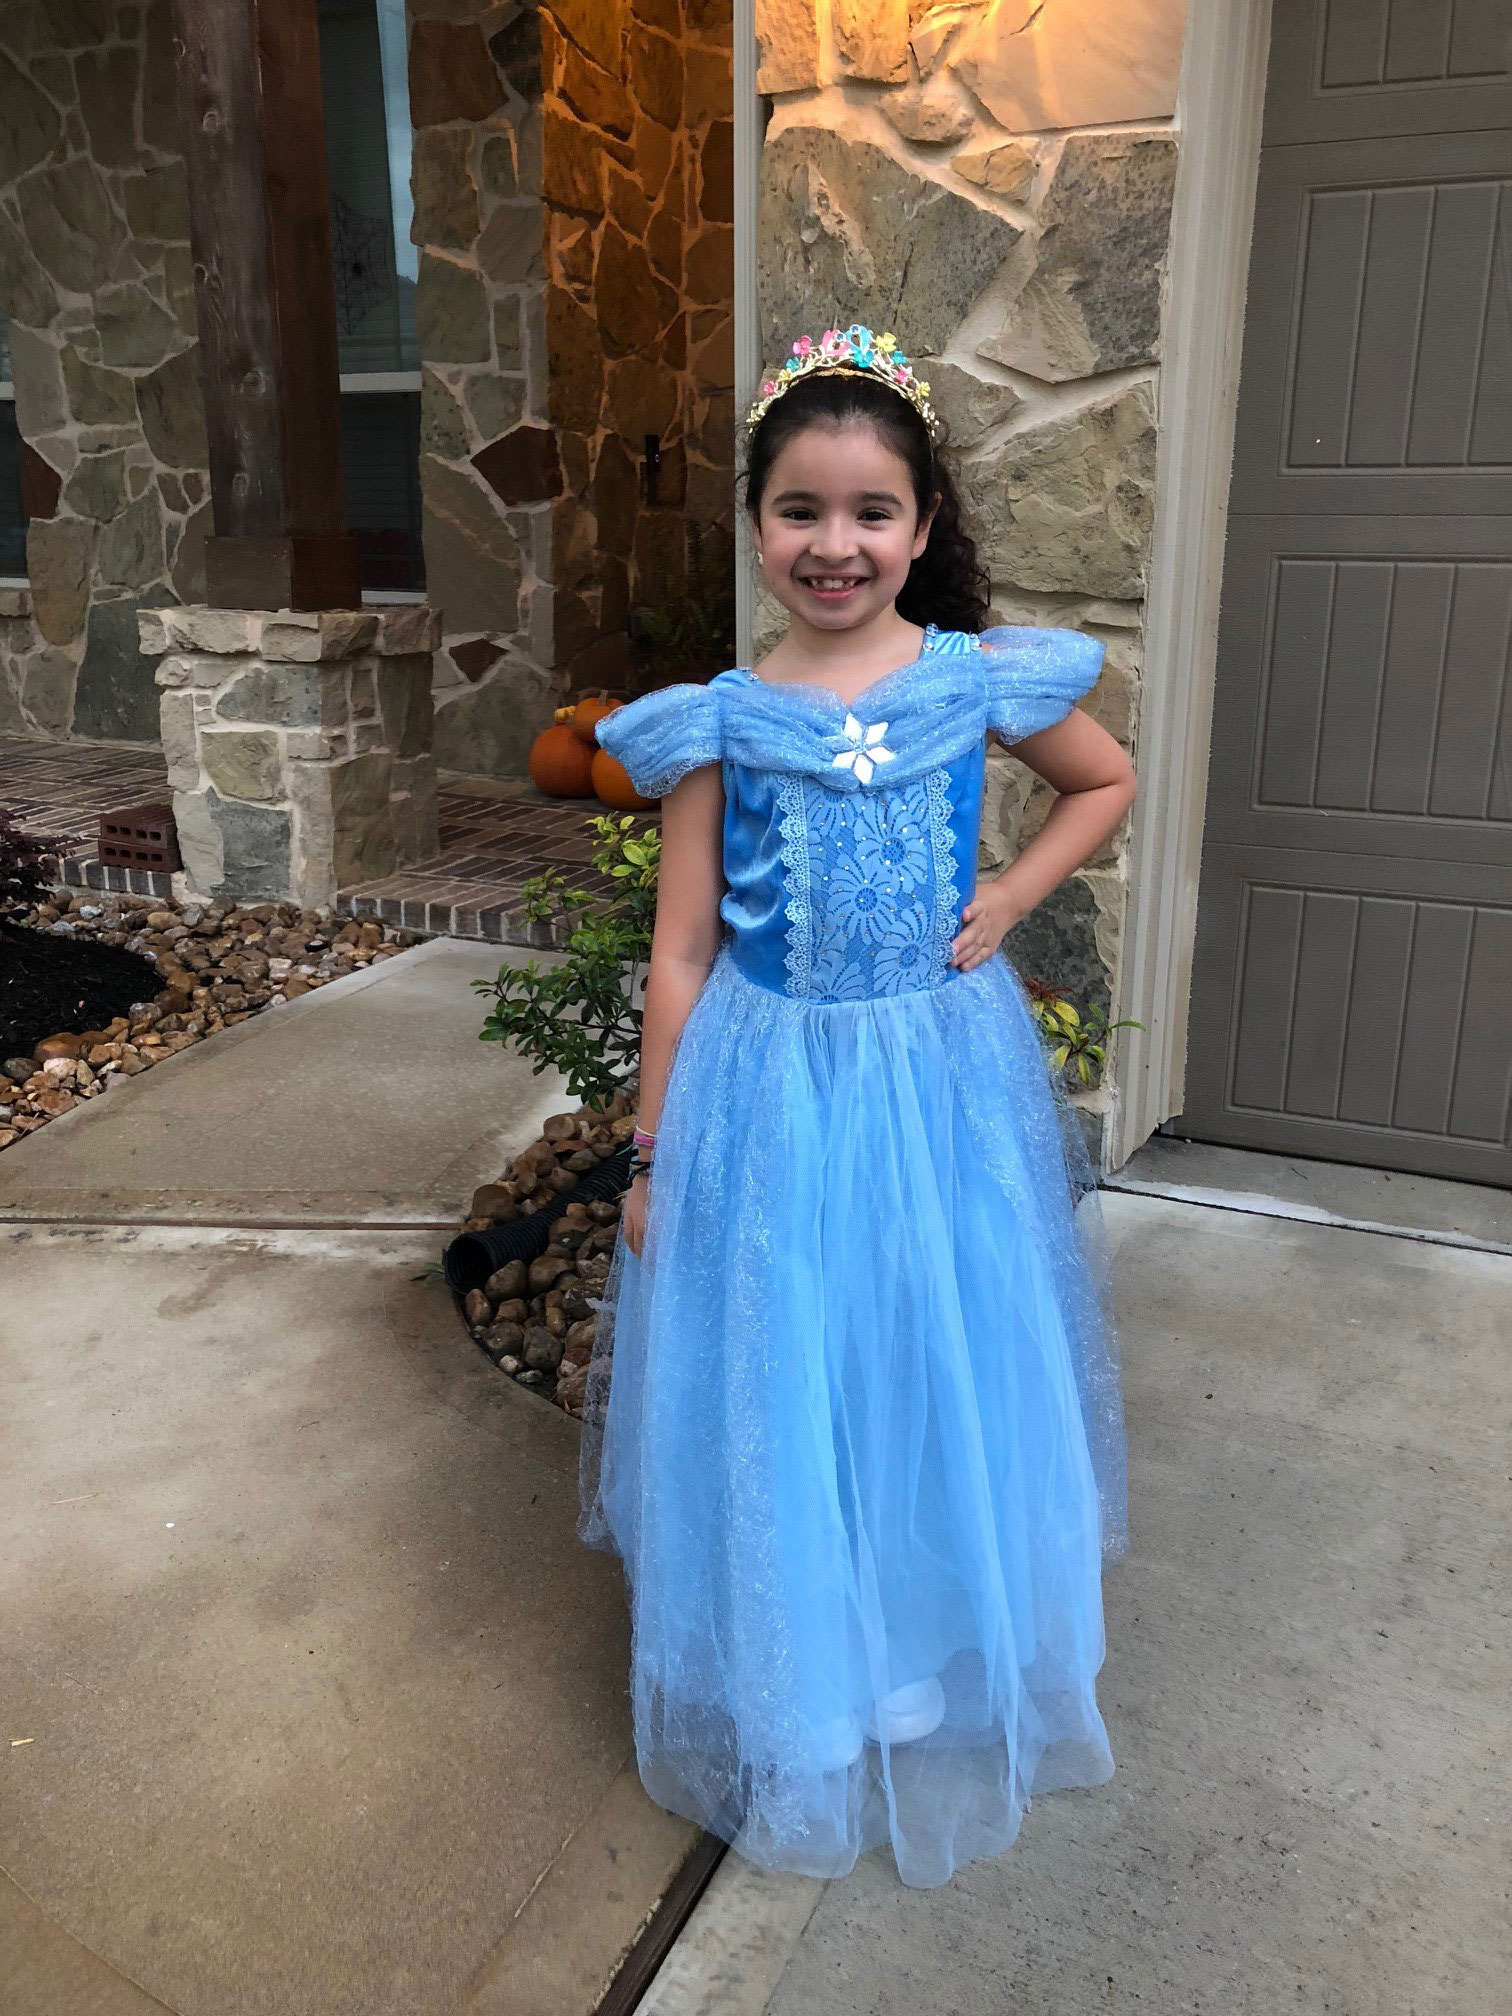 "<div class=""meta image-caption""><div class=""origin-logo origin-image none""><span>none</span></div><span class=""caption-text"">One of Patricia Lopez's daughters donned a Cinderella gown for Halloween.</span></div>"